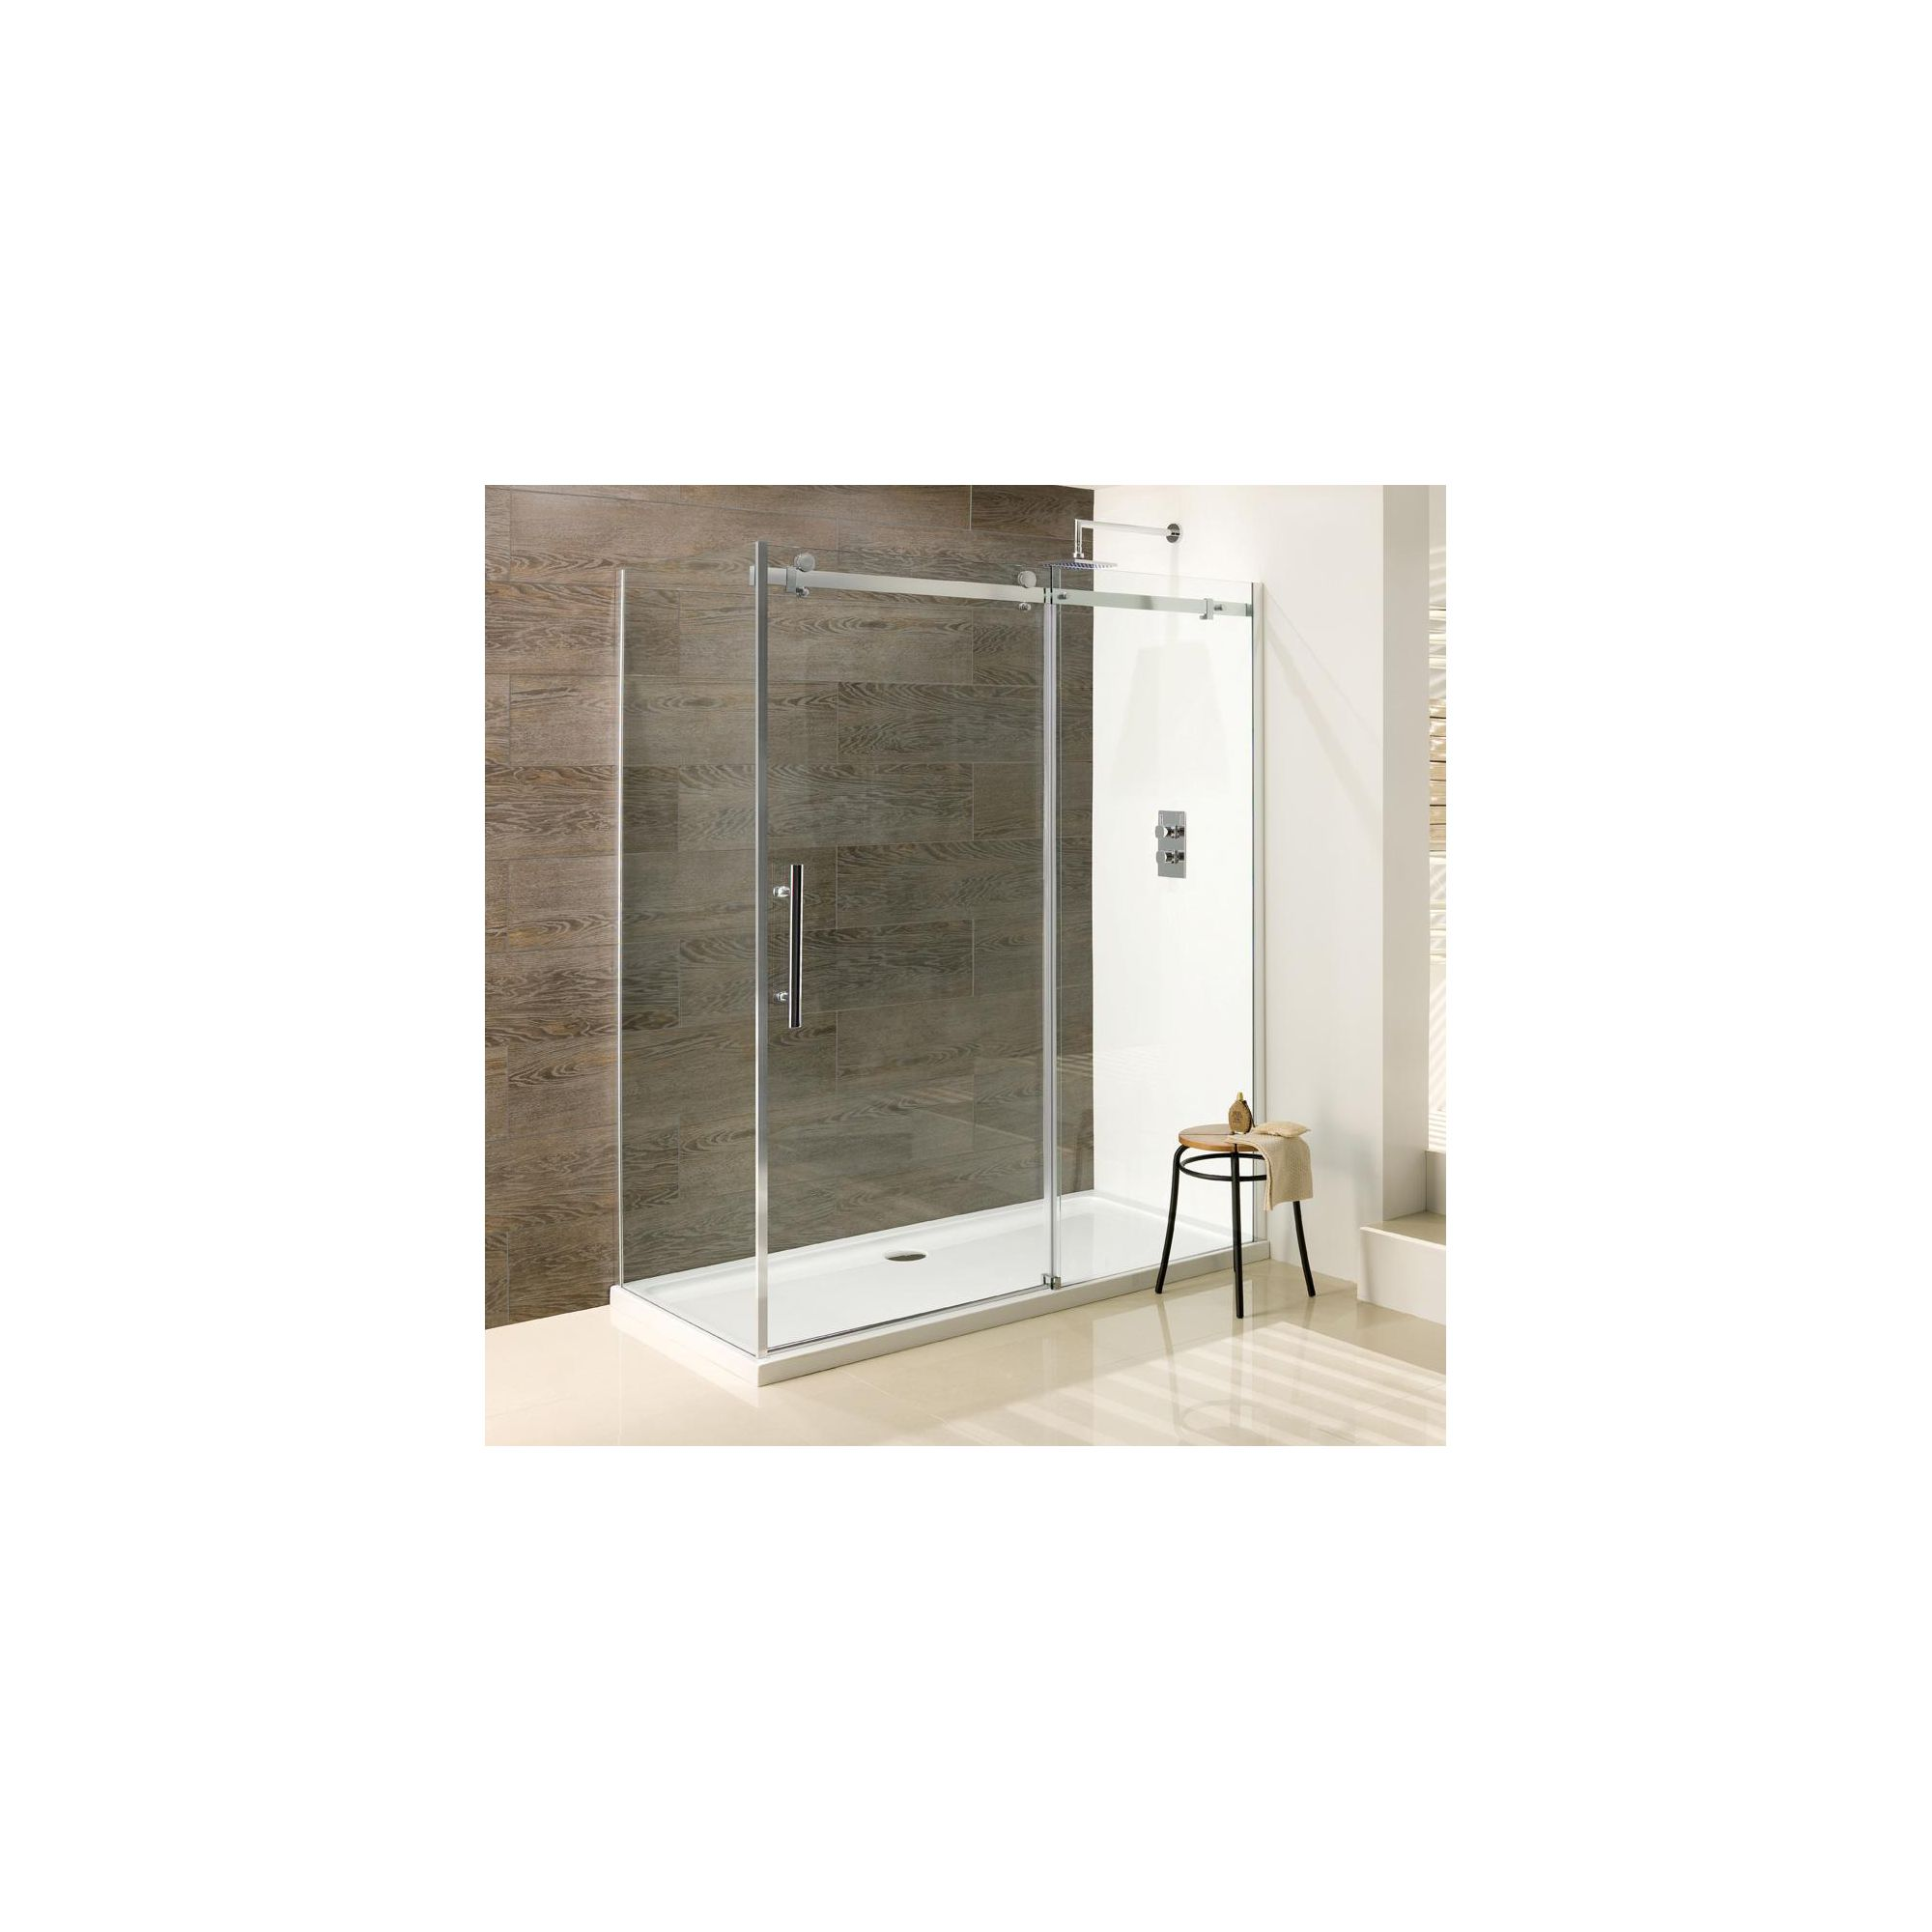 Duchy Deluxe Silver Sliding Door Shower Enclosure with Side Panel 1200mm x 700mm (Complete with Tray), 10mm Glass at Tesco Direct